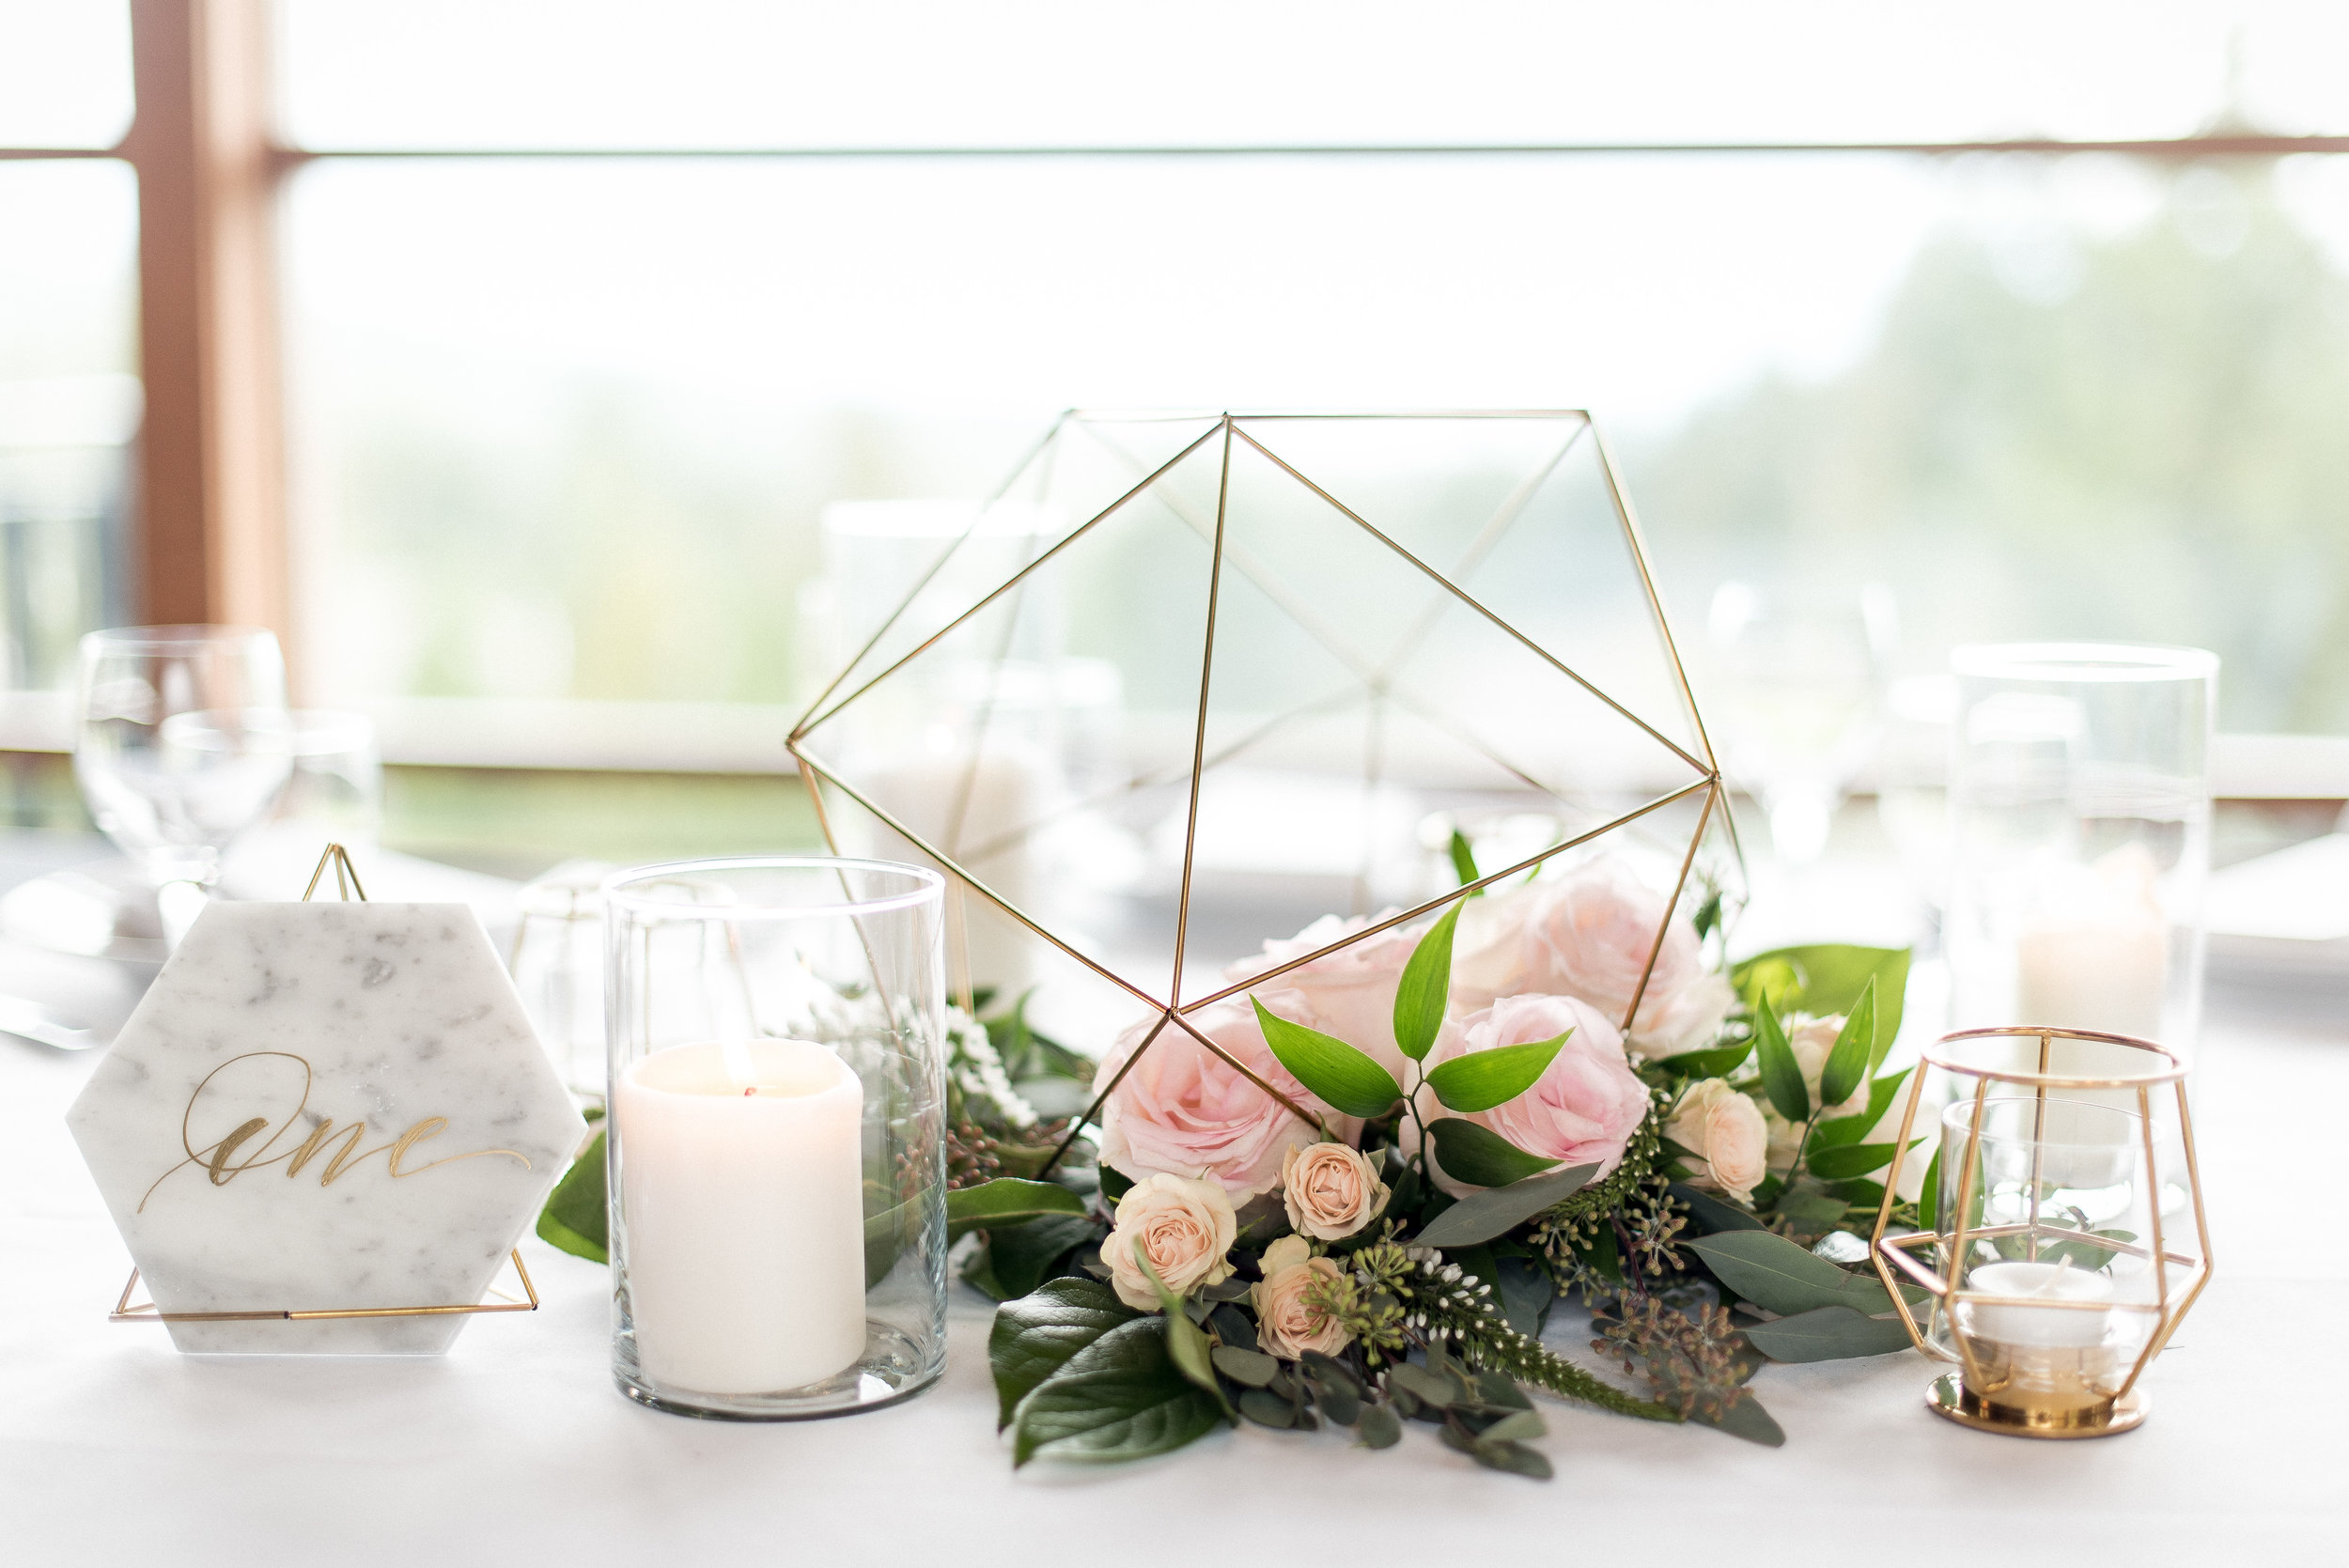 A Professional Digital Wedding Planner - Everything you need to plan your wedding like a pro.